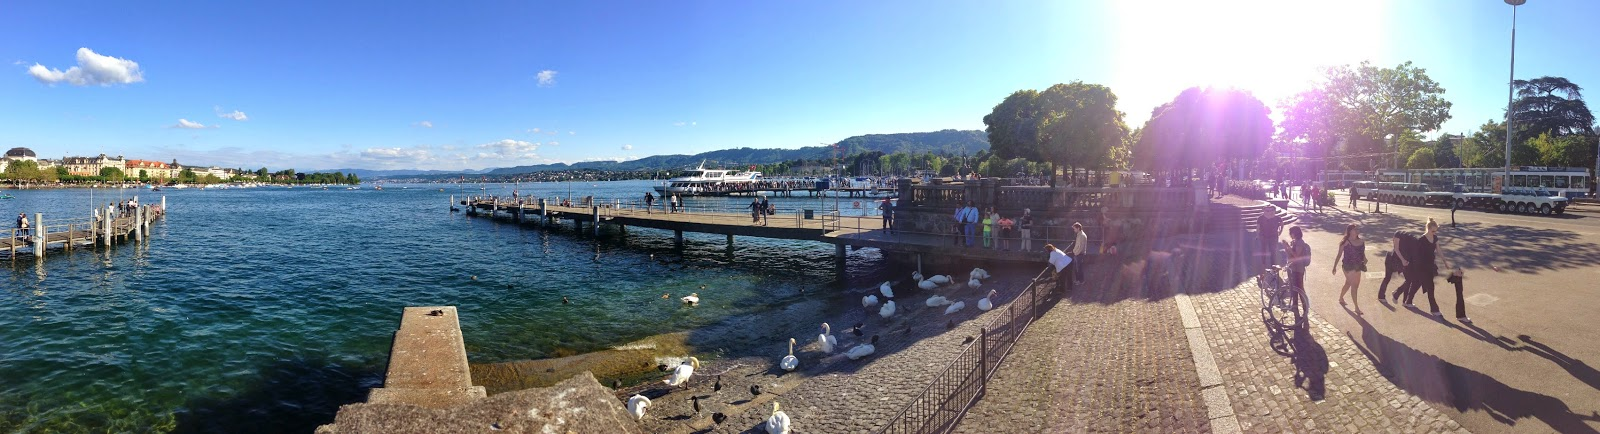 panaromic view of lake zurich